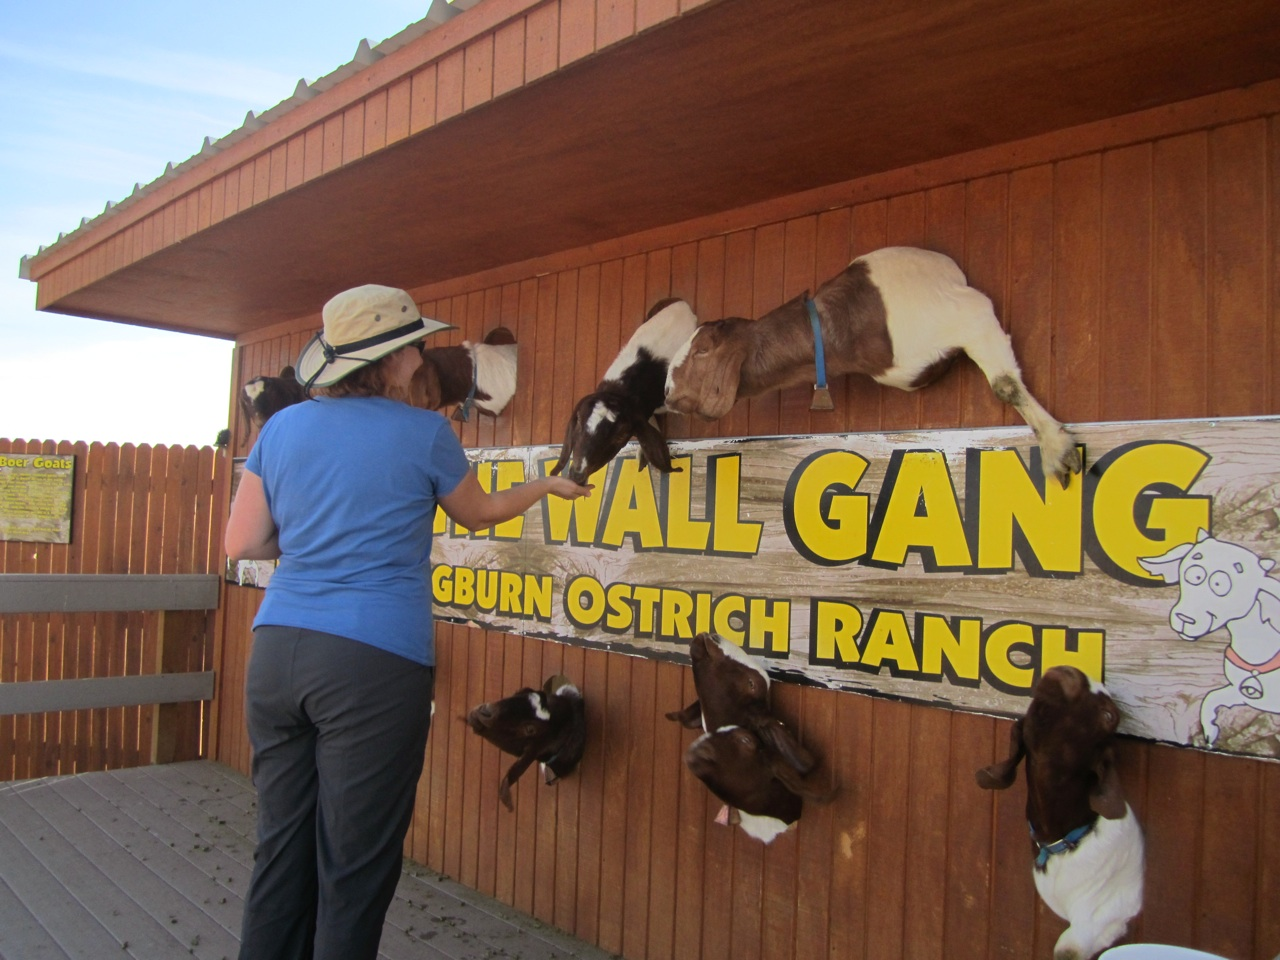 Brenda Feeding The Goats At The Hole In The Wall